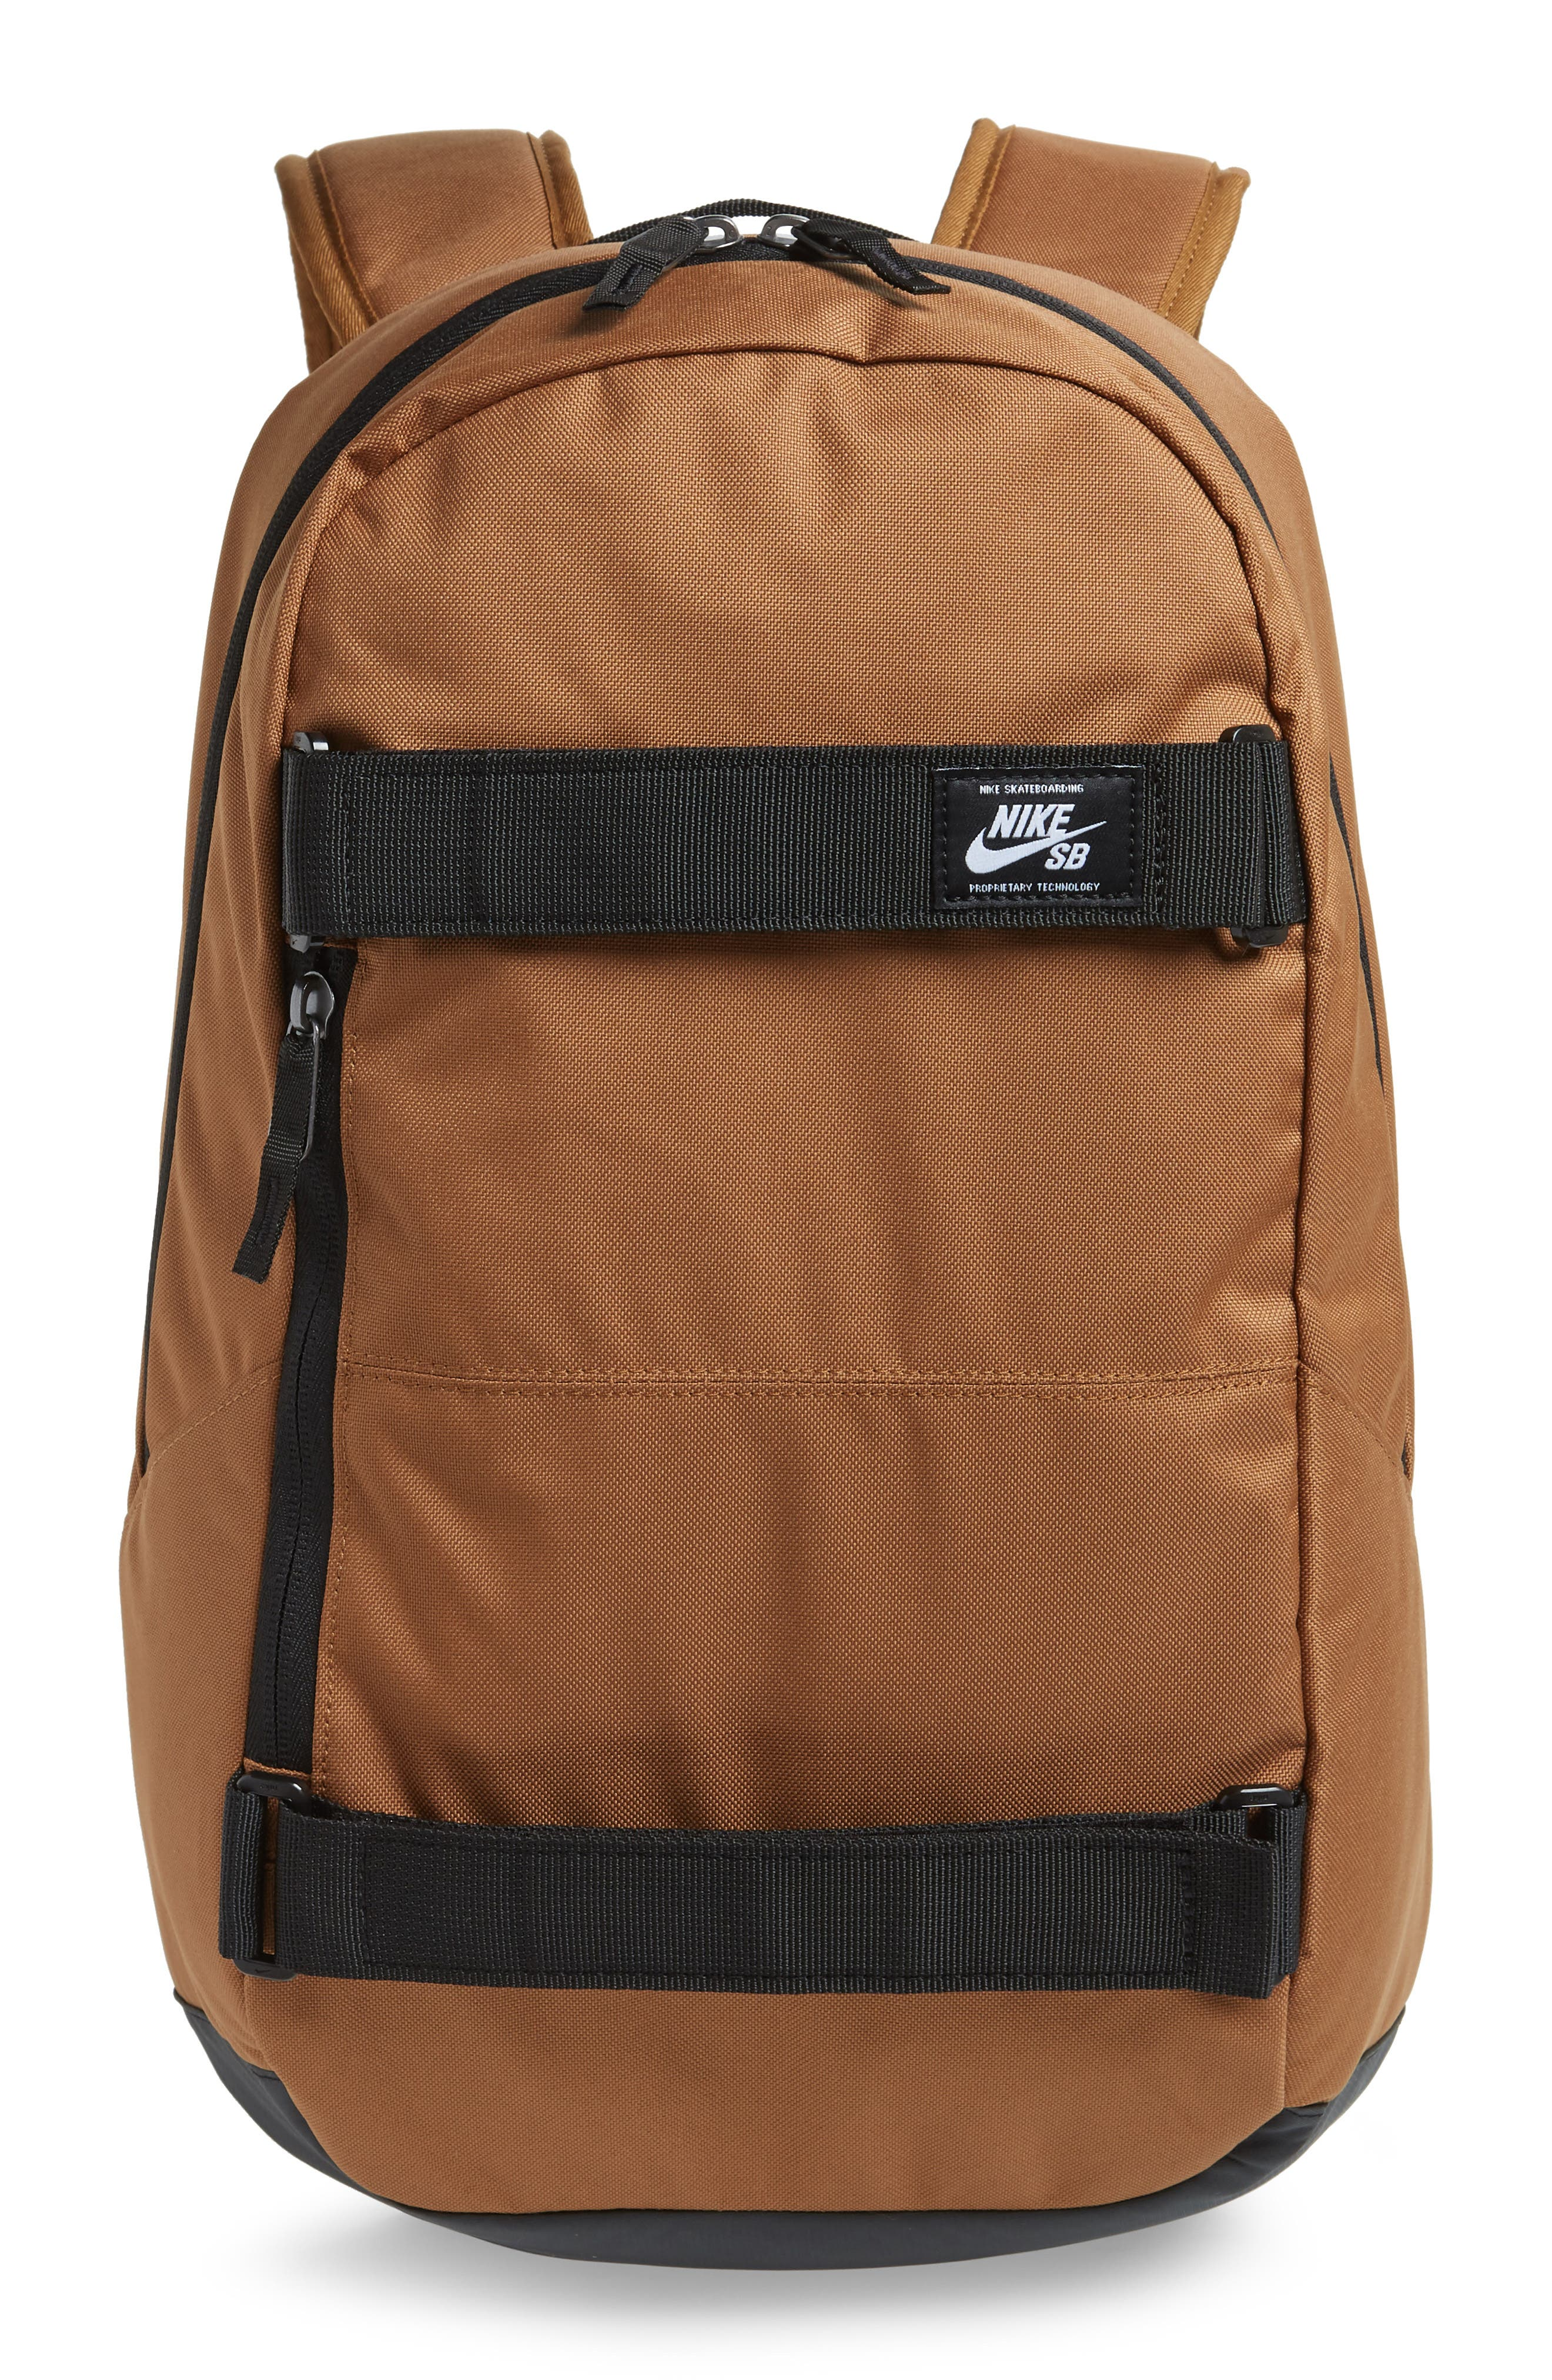 Courthouse Backpack,                             Main thumbnail 1, color,                             ALE BROWN